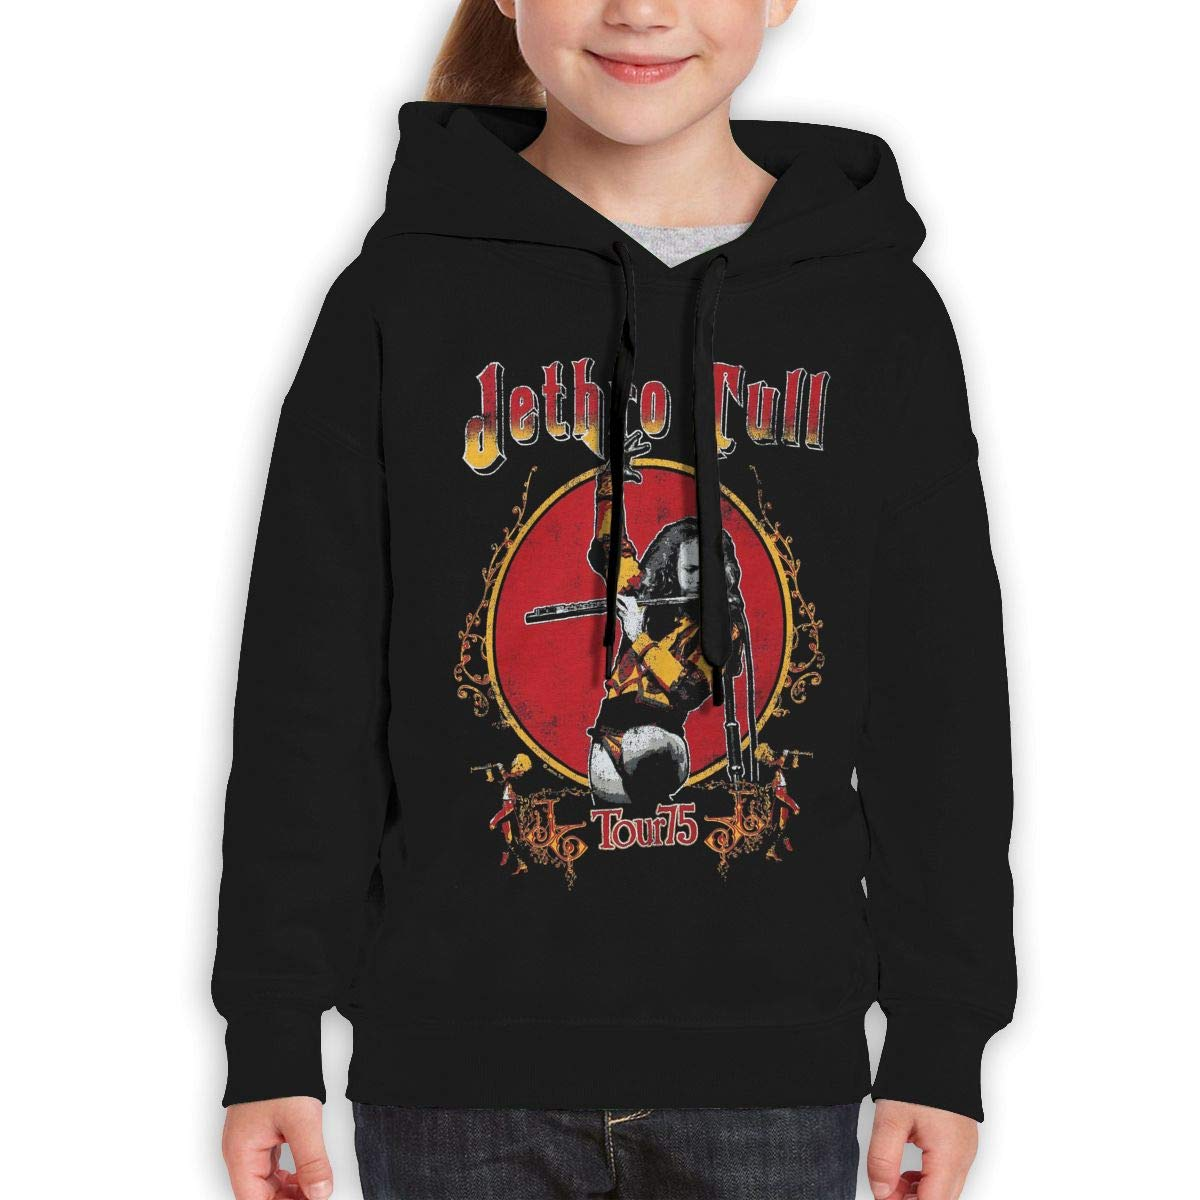 Guiping Jethro Tull Tour Teen Hooded Sweate Sweatshirt Black